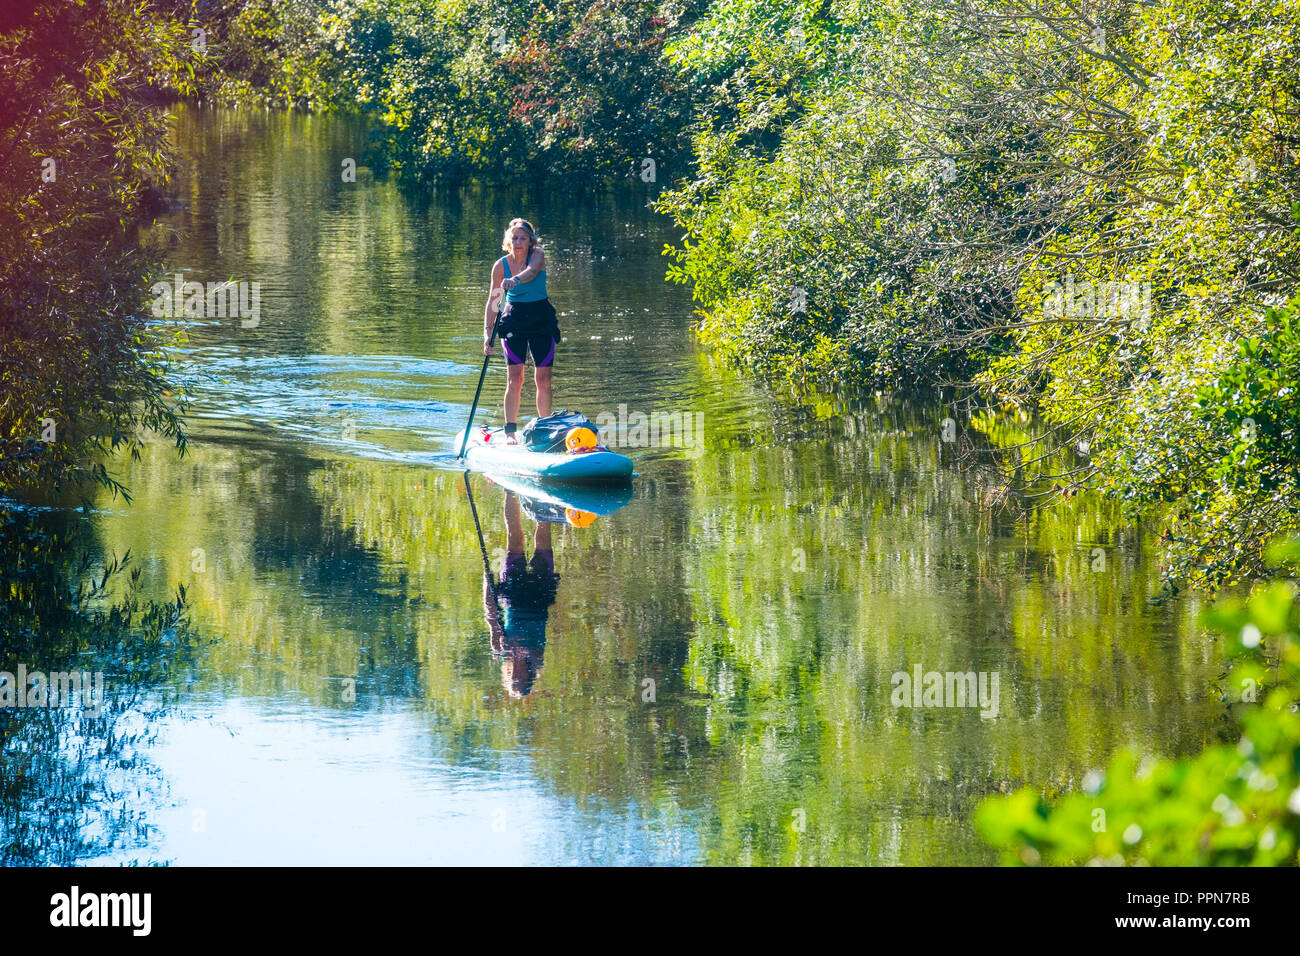 Aberystwyth Wales UK, Thursday 27 September 2018  UK Weather:  Environmental campaigner GILLY THOMAS out on her paddleboard,  voluntarily patrolling the River Rheidol in Aberystwyth, looking out for and collecting pplastic rubbish,  on a  sunny and warm 'Indian summer' morning in Aberystwyth , as the UK heads into a period of settled warm sunny weather. Photo © Keith Morris / Alamy Live News - Stock Image